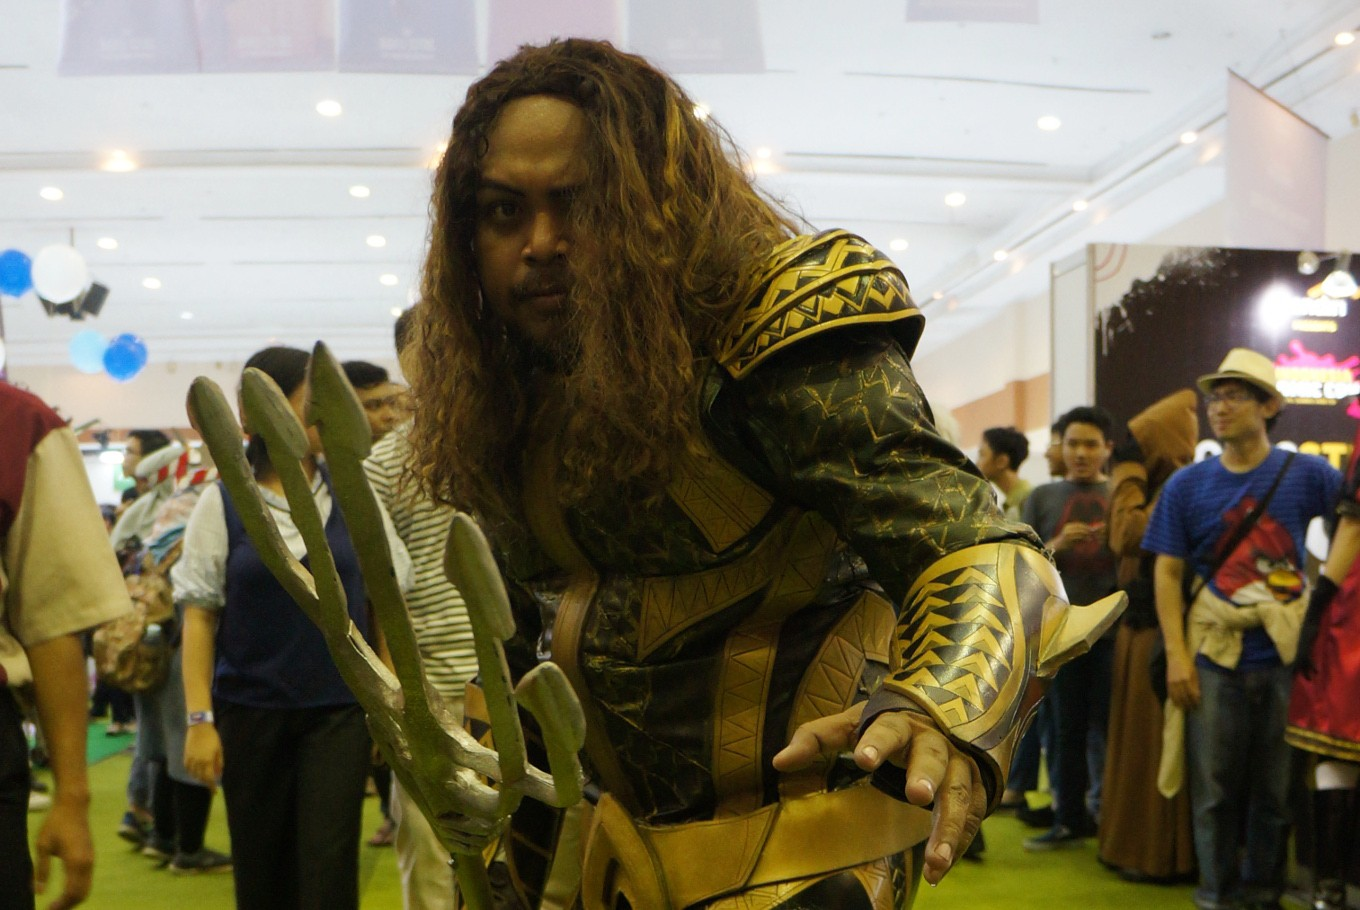 A cosplayer is dressed as Aquaman.